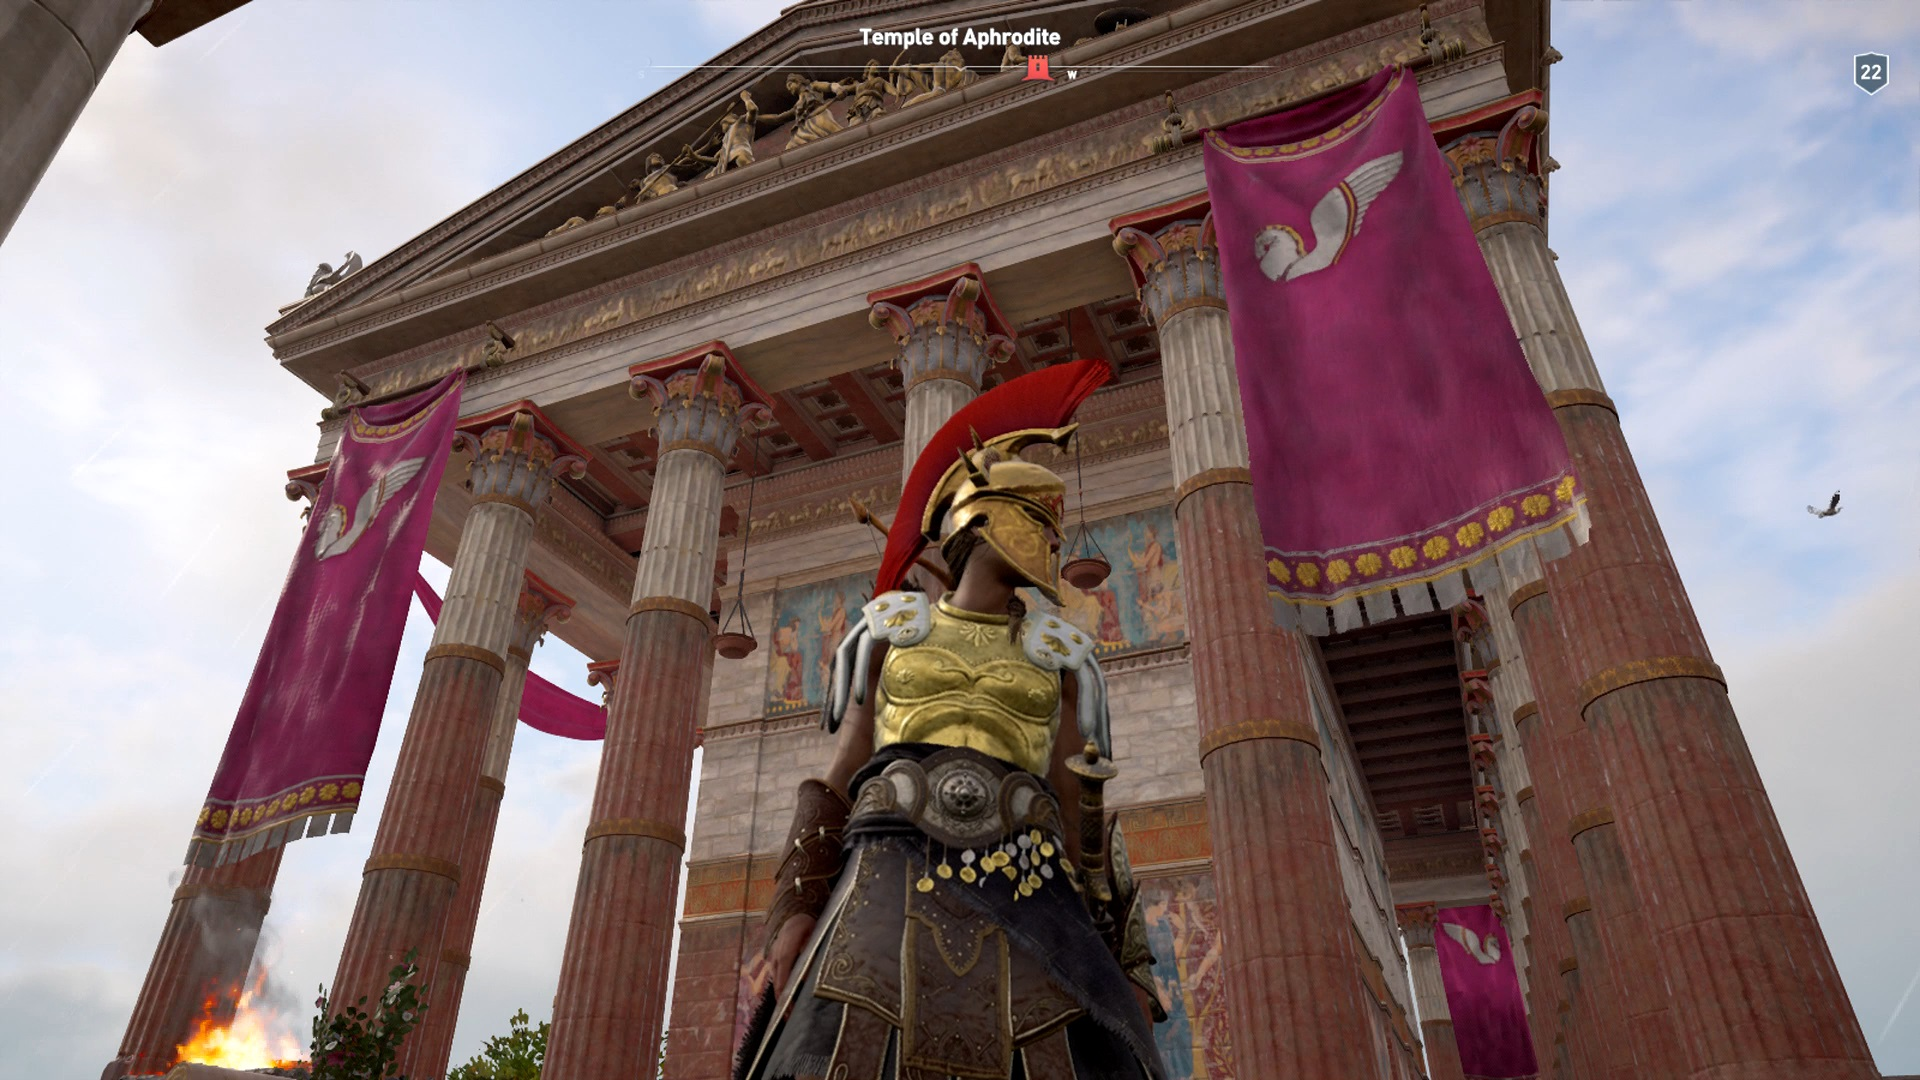 Kassandra outside the Temple of Aphrodite